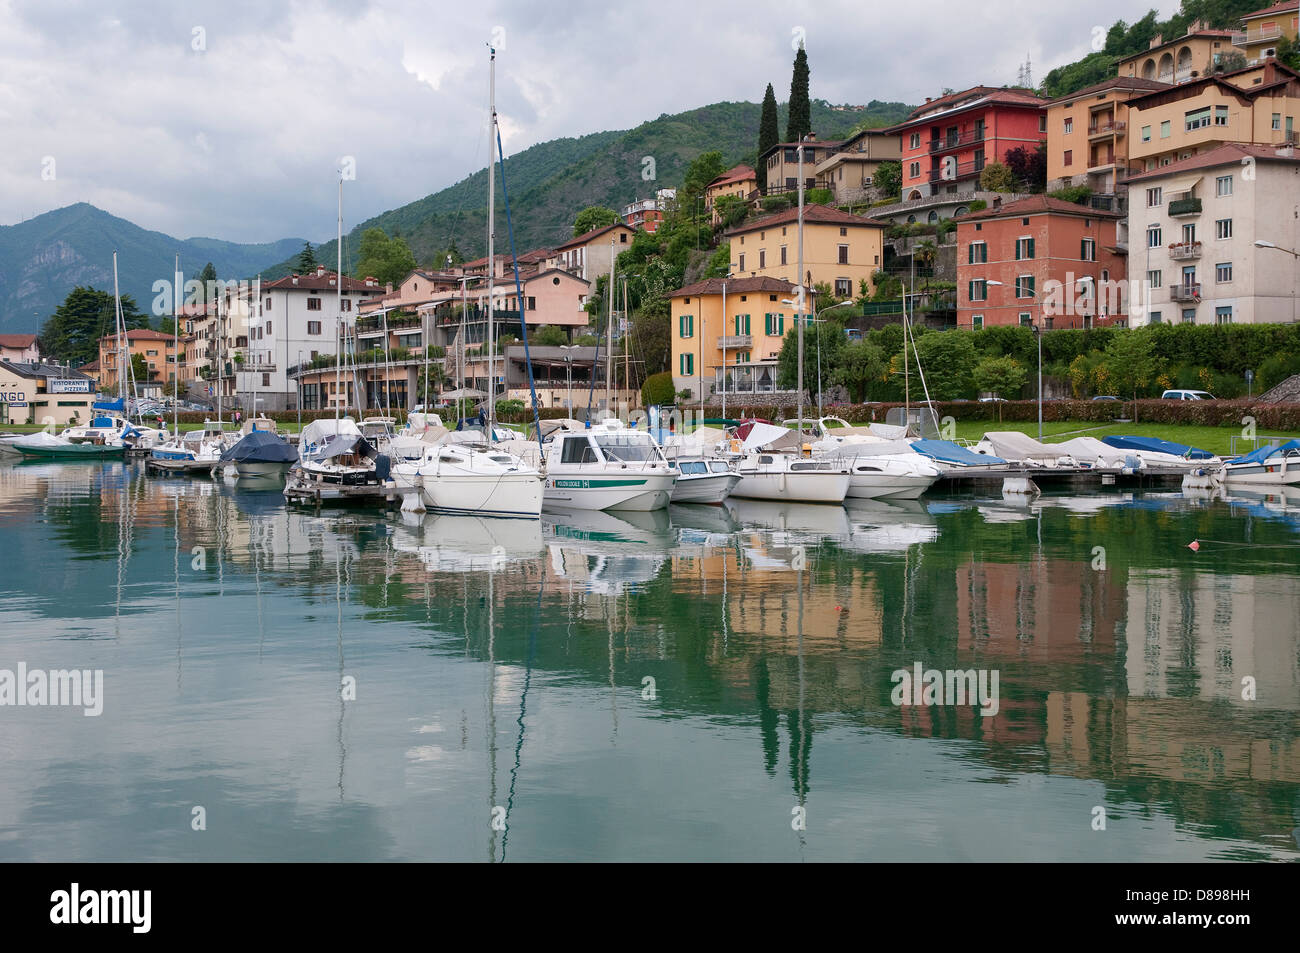 lovere, lake iseo, lombardy, italy - Stock Image